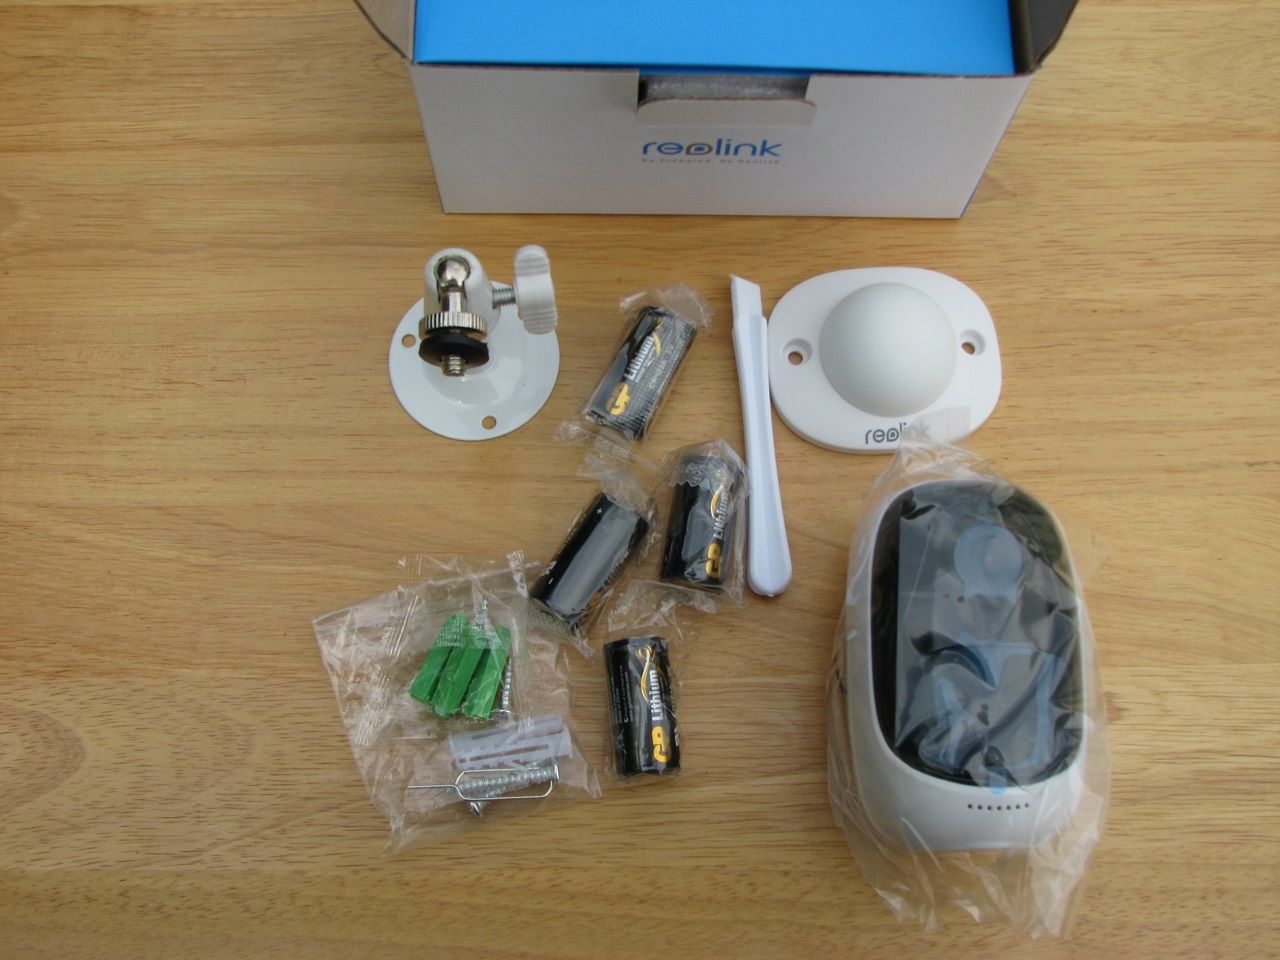 Reolink Argus Review - Network Camera Tech